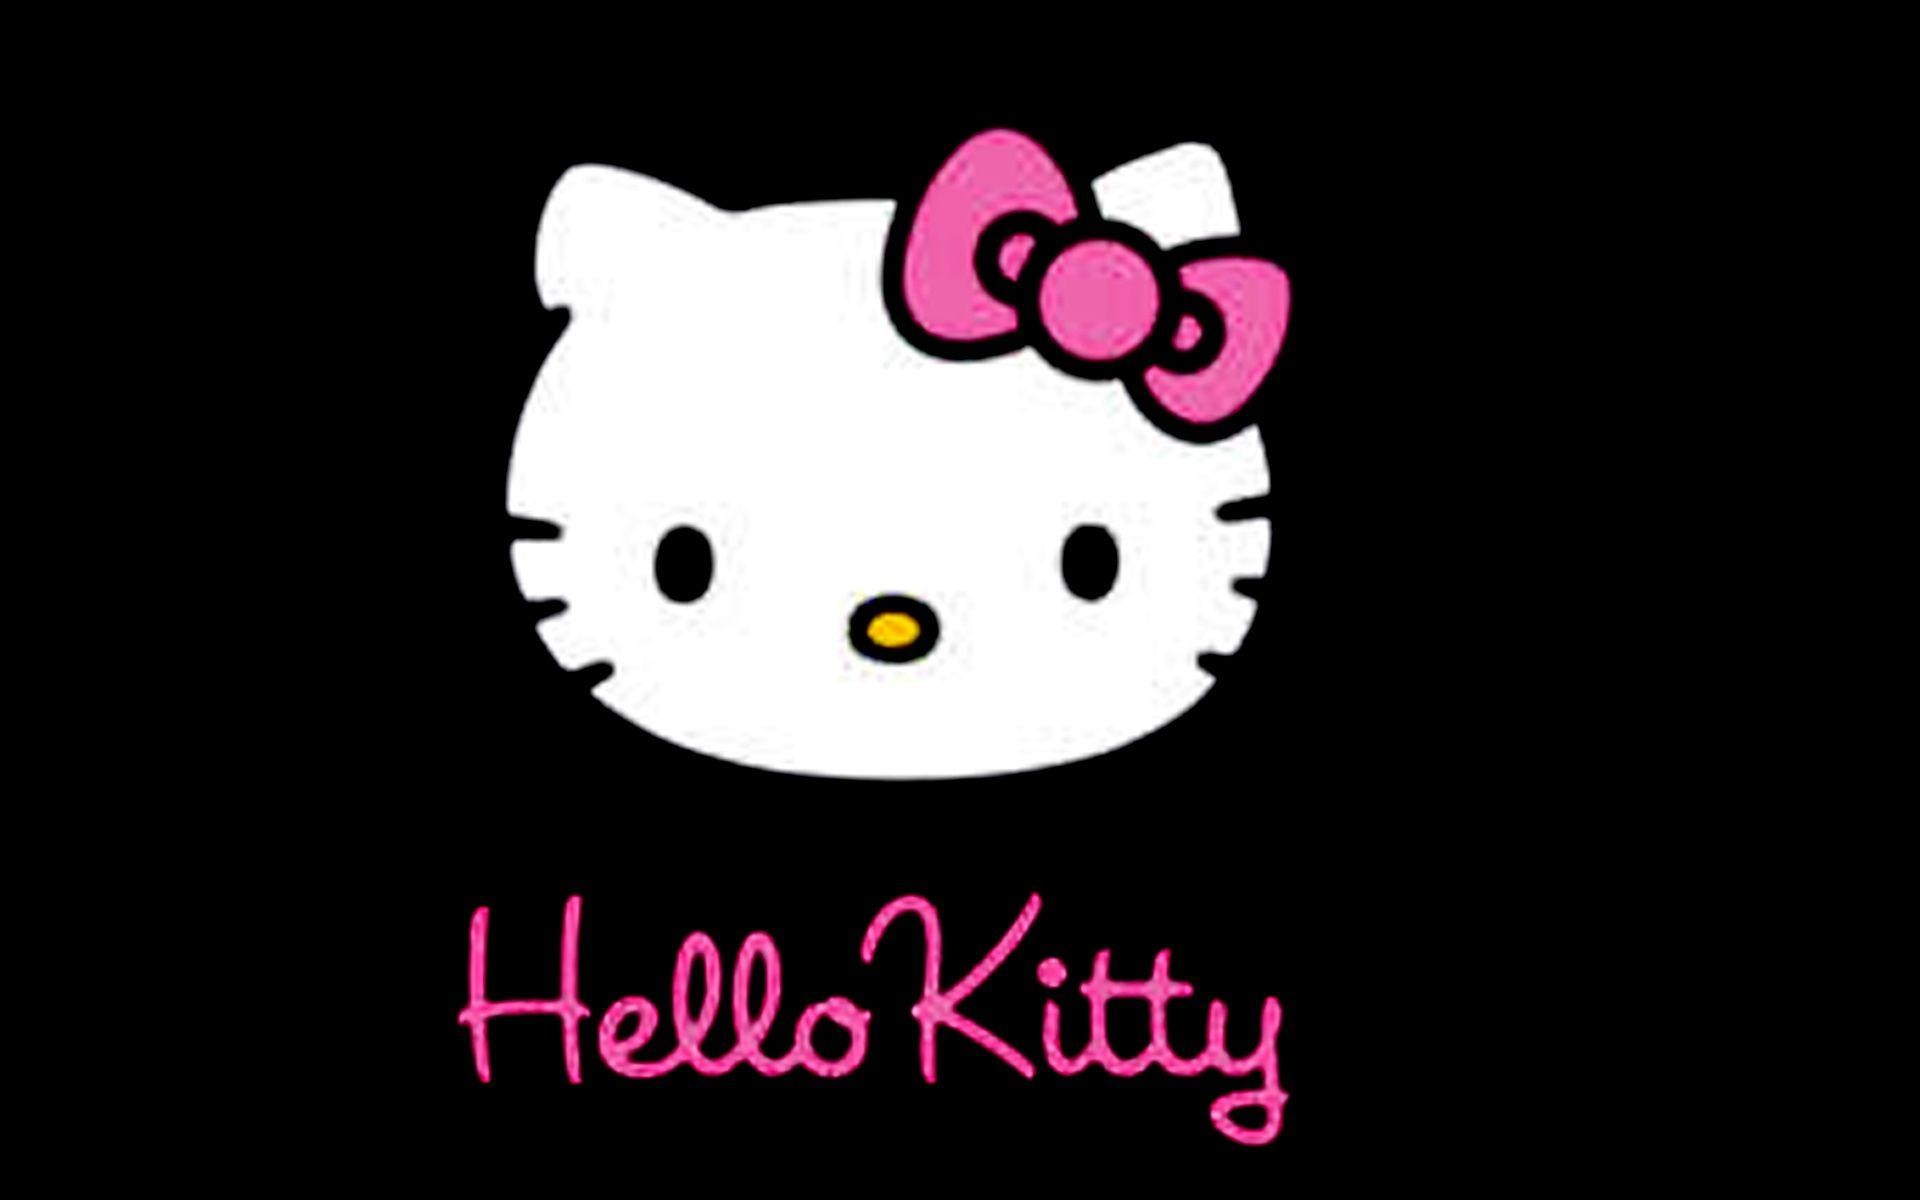 Amazing Wallpaper Hello Kitty Halloween - 986172-hello-kitty-halloween-backgrounds-1920x1200-for-pc  You Should Have_608434.jpg